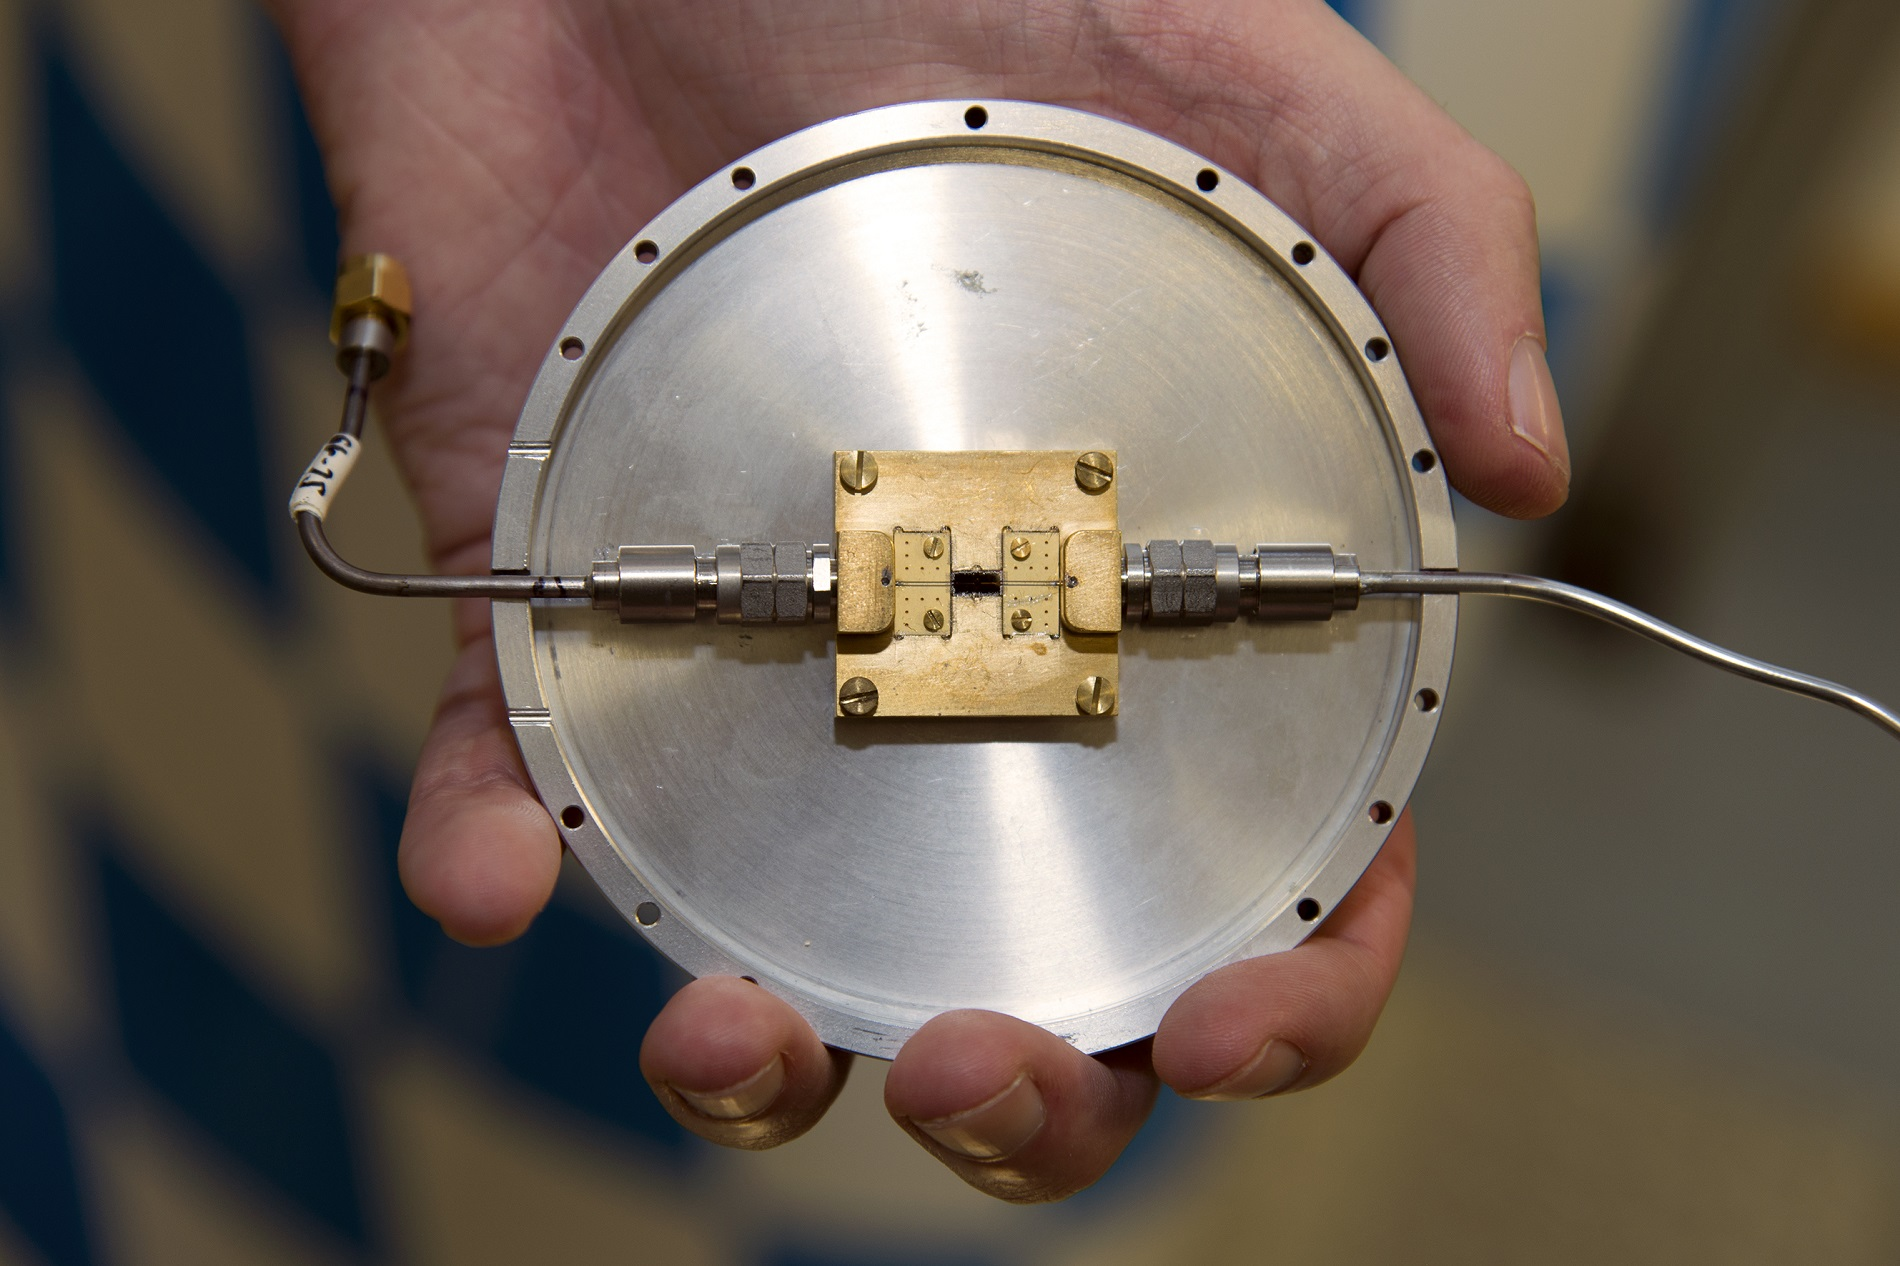 Quantum circuit, developed at the Walther-Meissner-Institut, which can be used to produce restricted microwave states